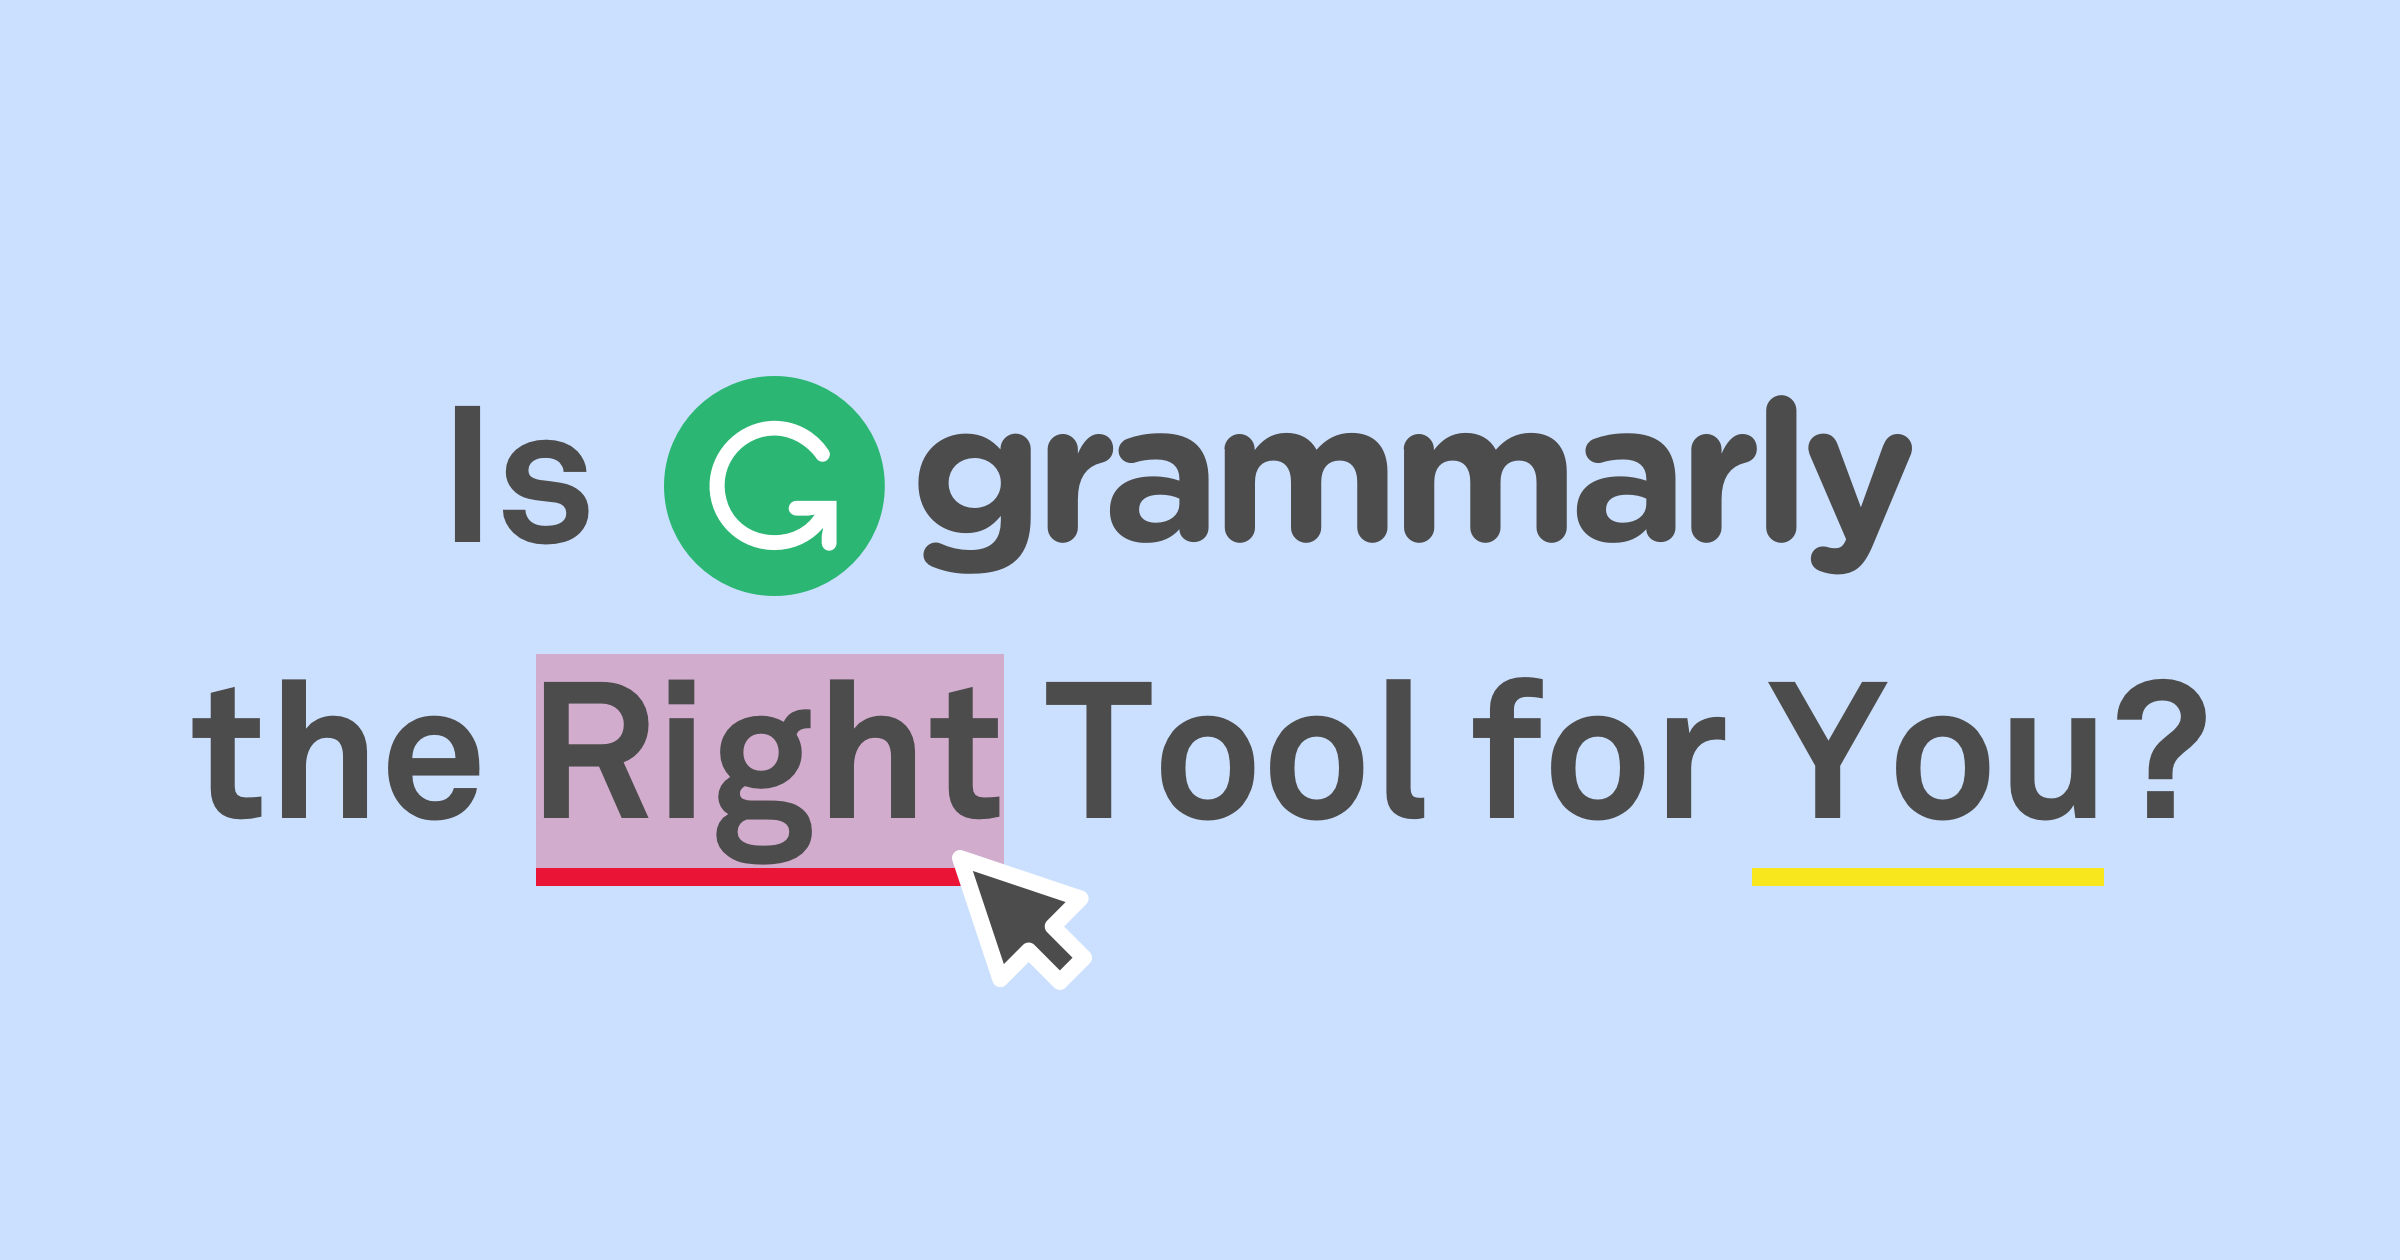 How Do You Delete The Markups From Grammarly?